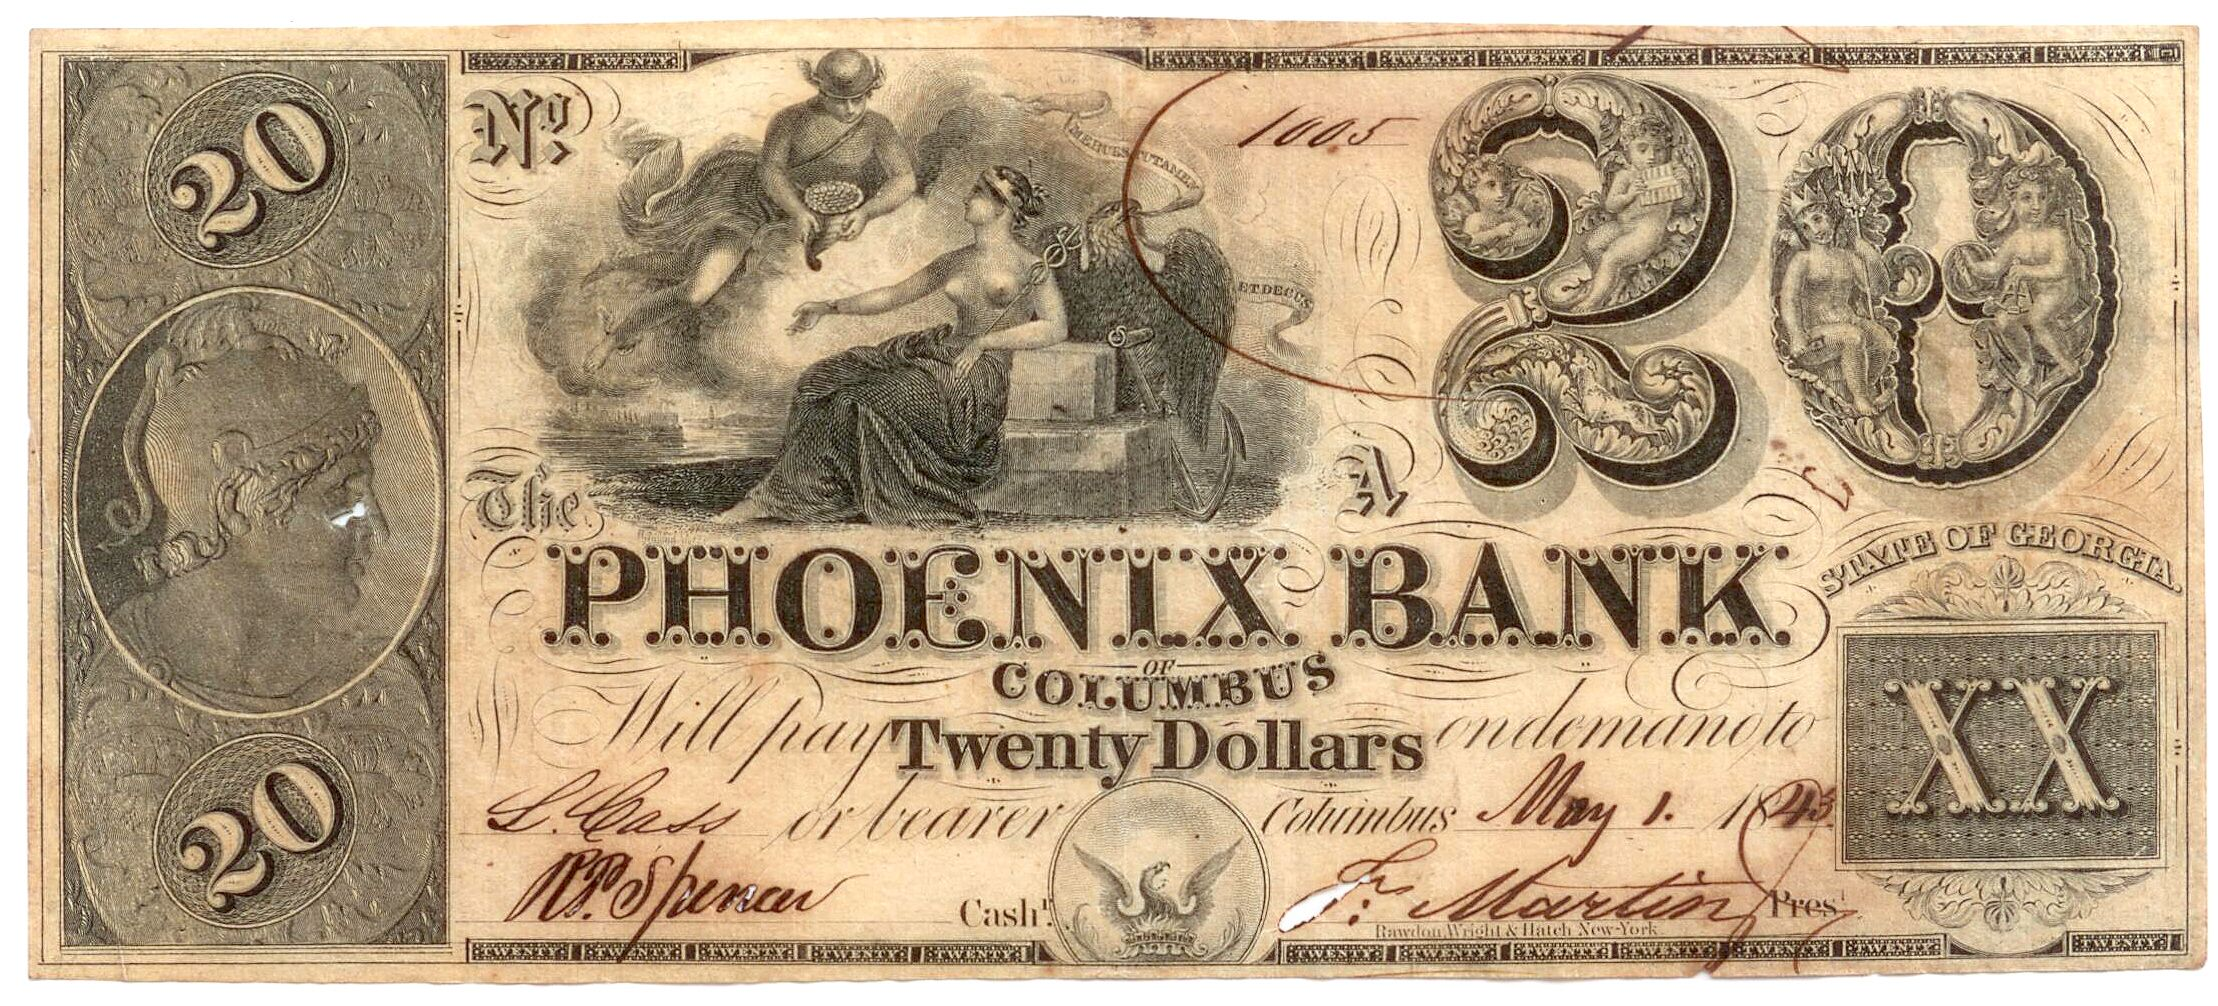 Obsolete Bank Note 1843 Phoenix Bank Columbus Georgia Bank Notes Paper Currency Coins Worth Money